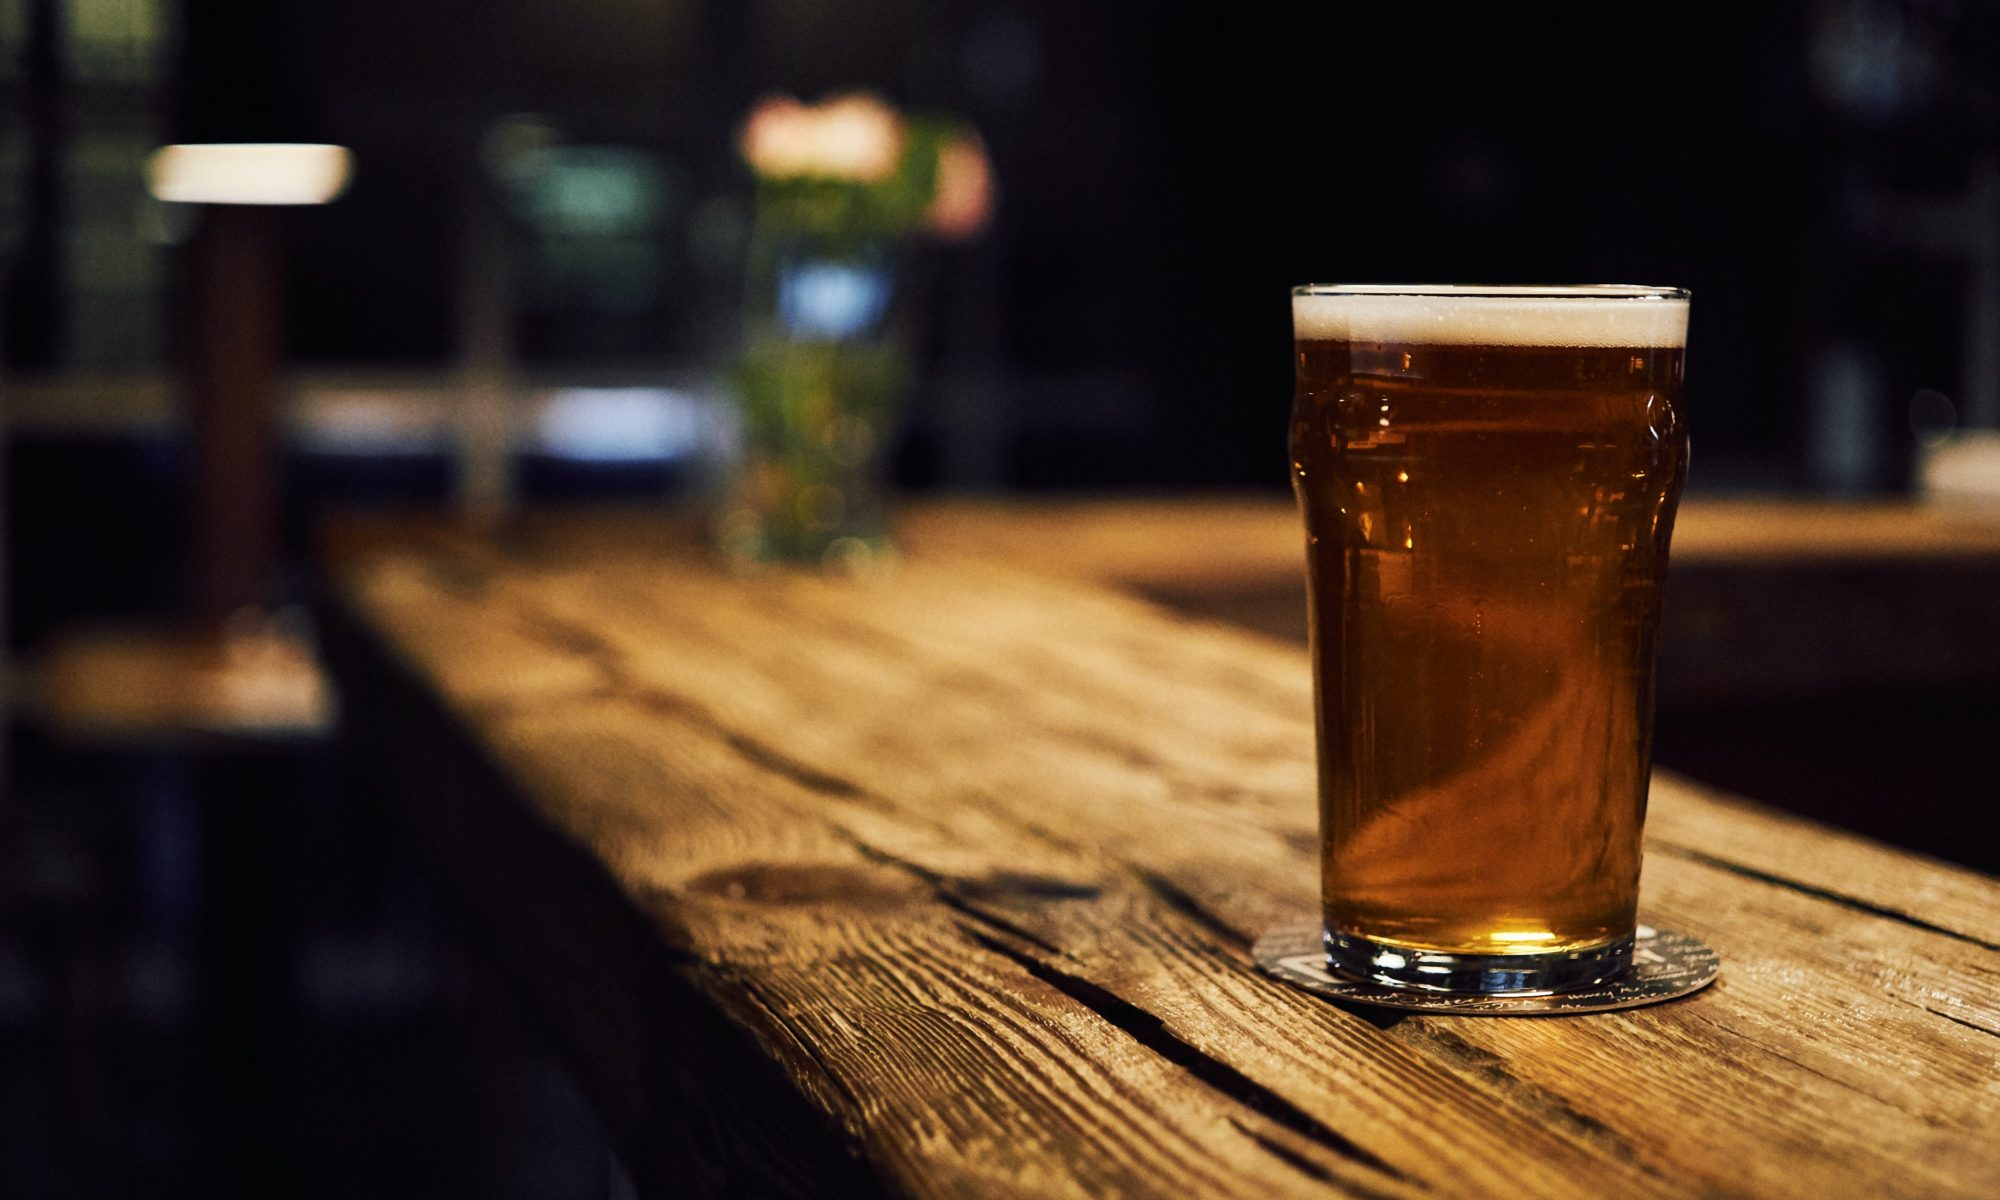 Picture of glass of beer